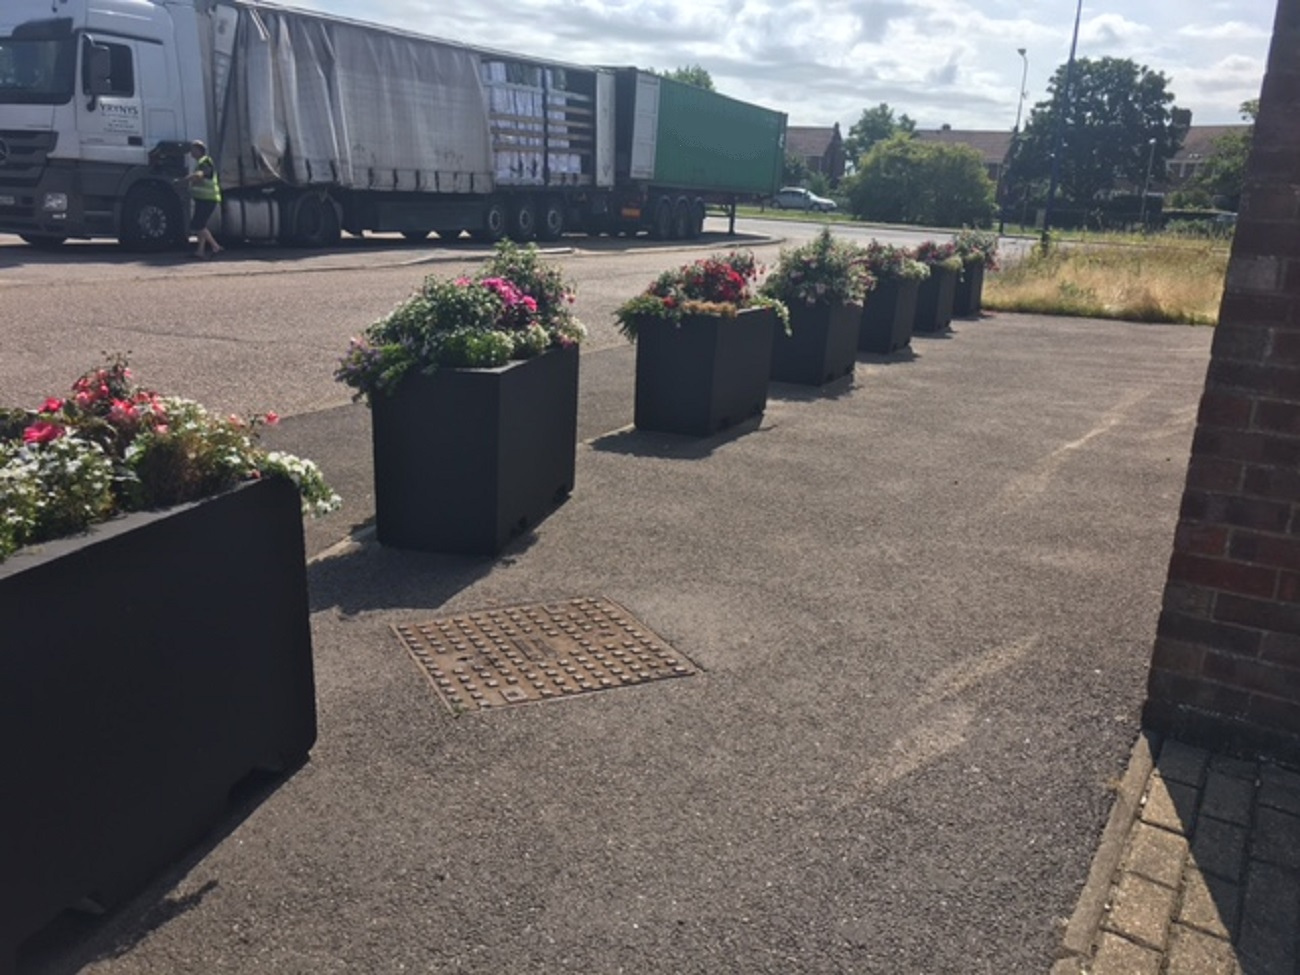 Concrete barriers blocks planters